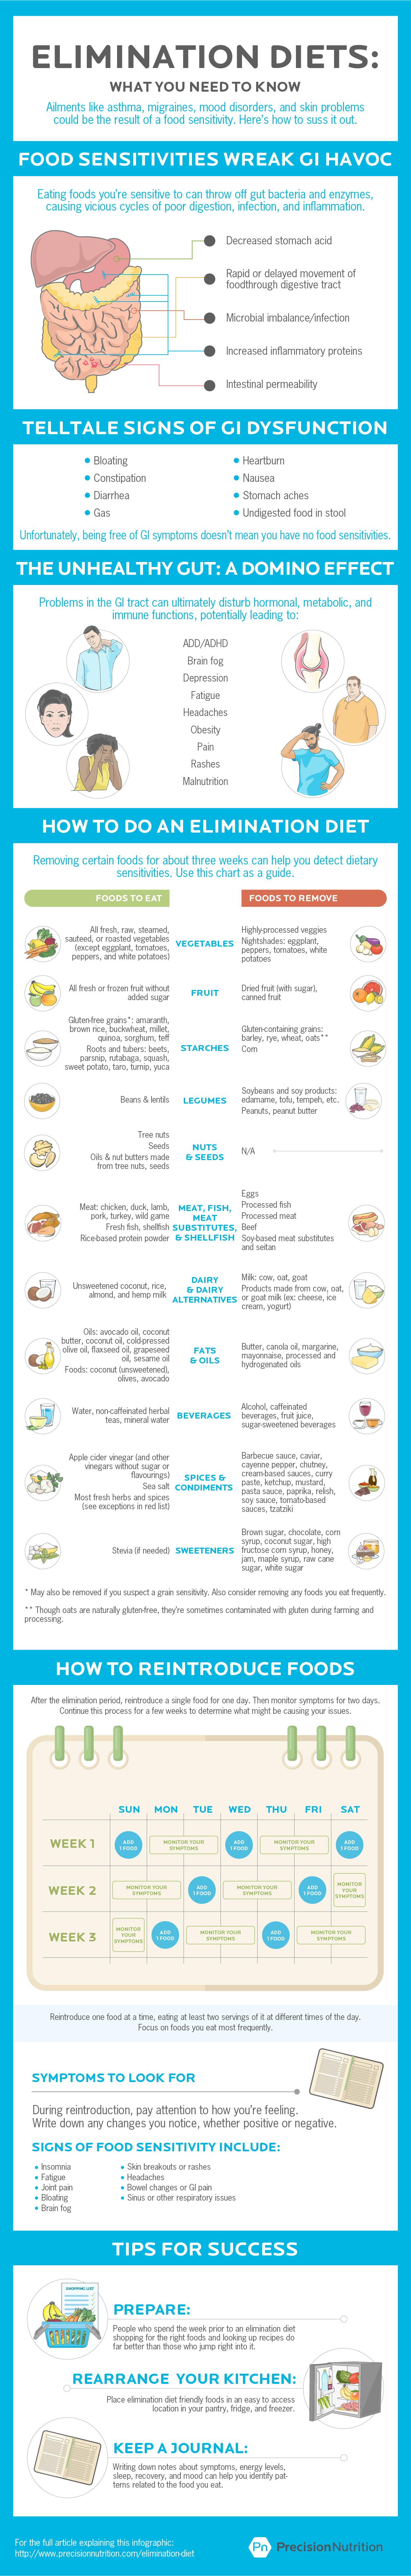 Elimination diets  [Infographic] Could giving up certain